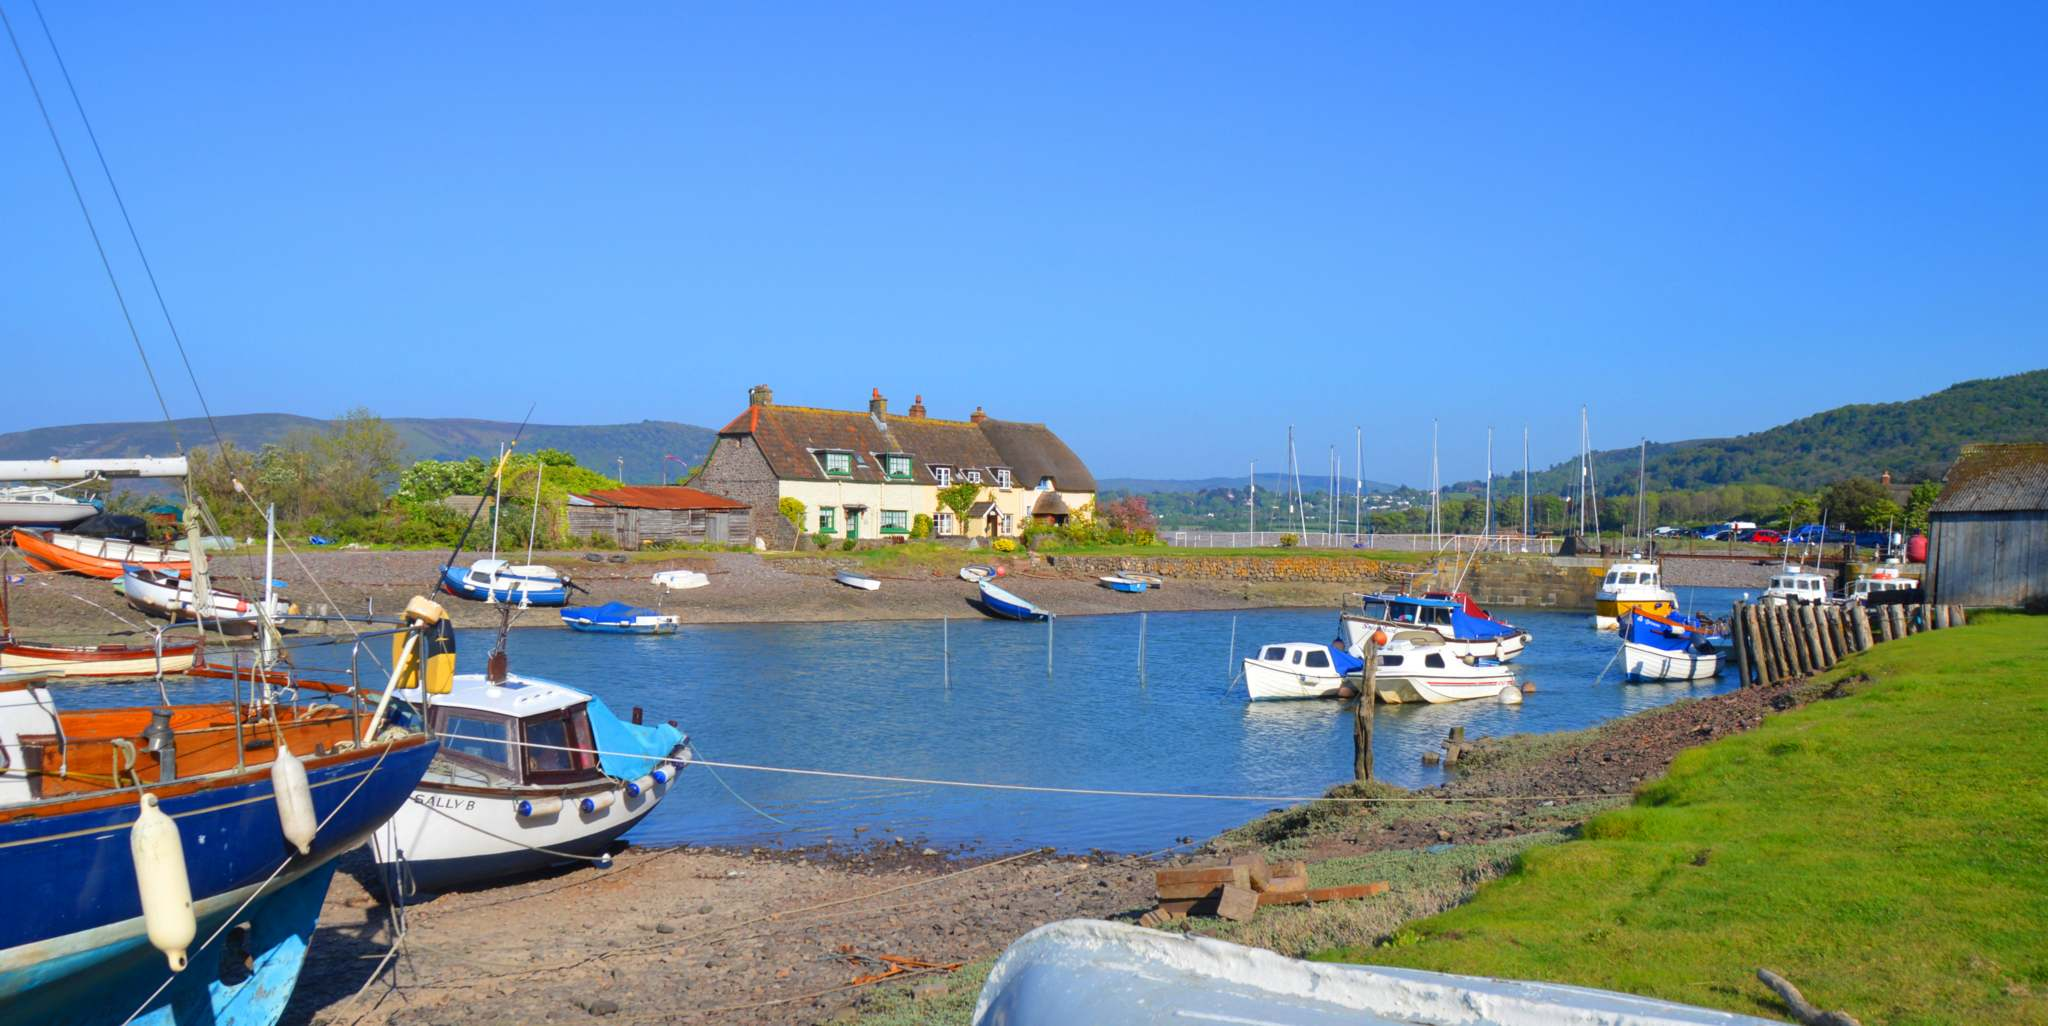 BLUE SKIES: Porlock Weir - Leanna Coles - Somerset Camera Club